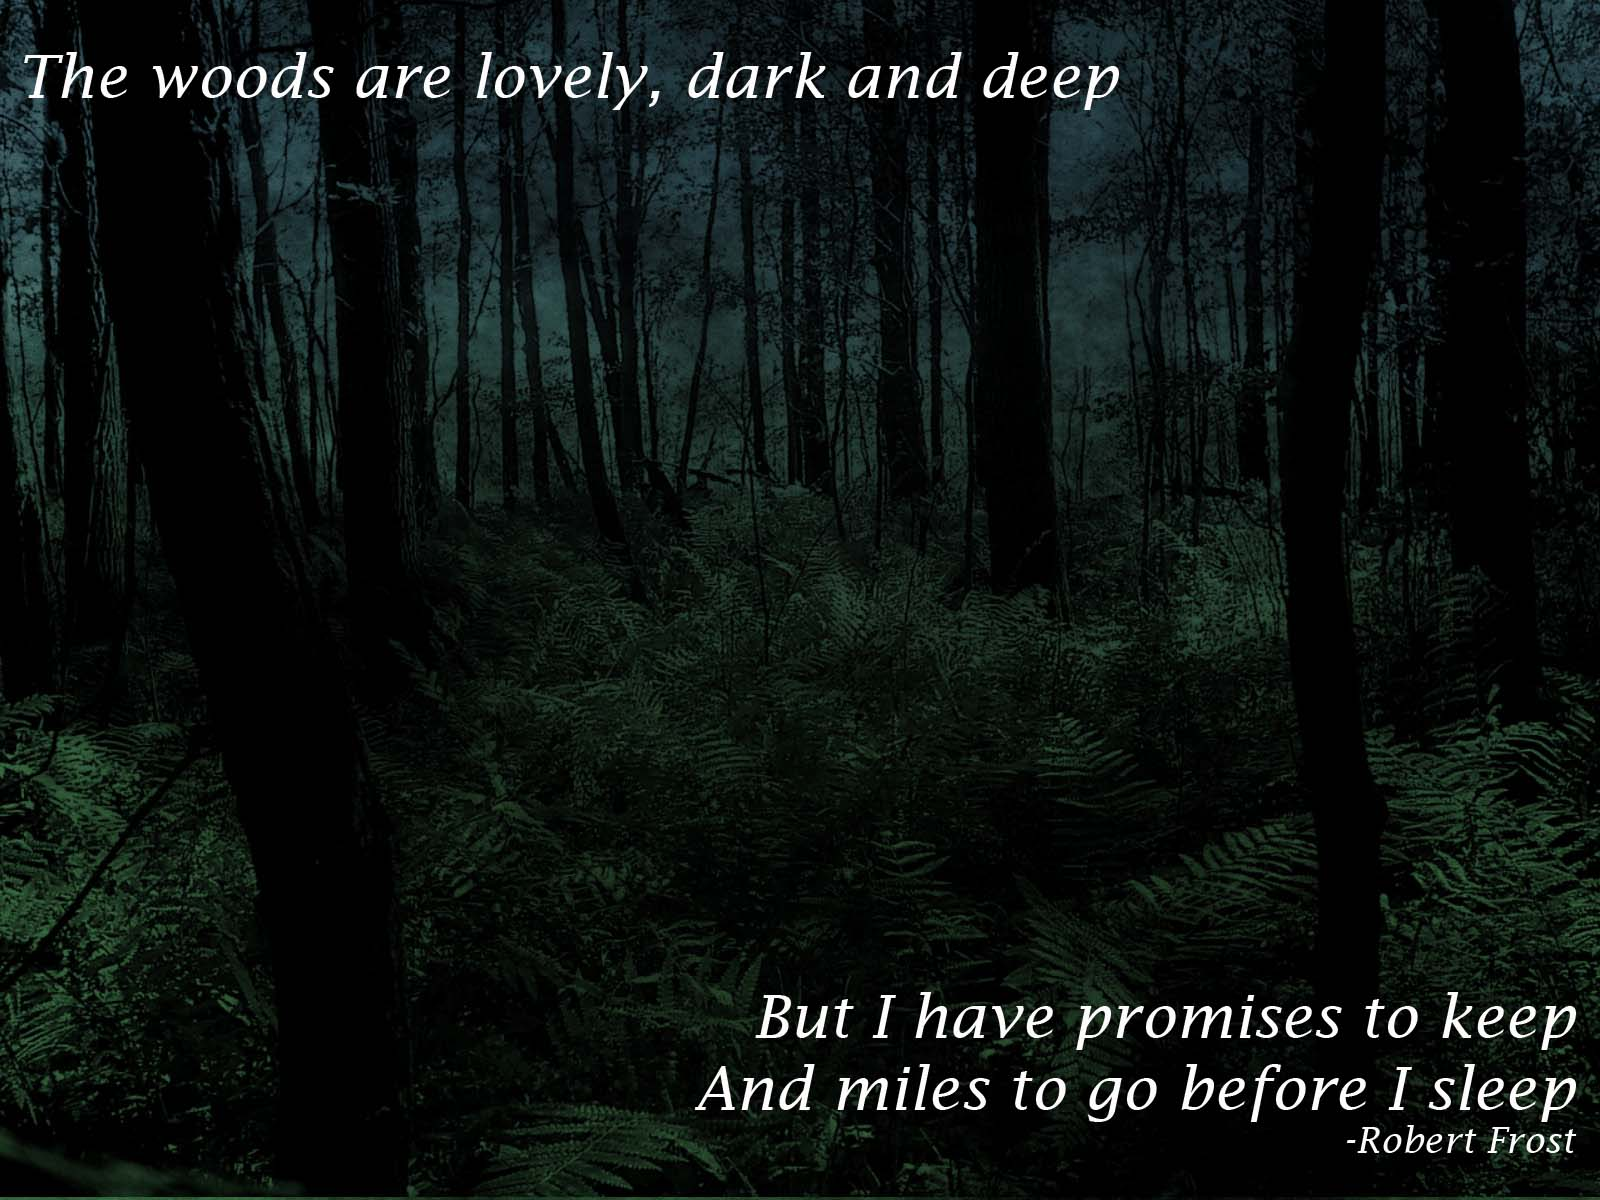 The woods are lovely dark and deep  Robert Frost   The best quotes 1600x1200